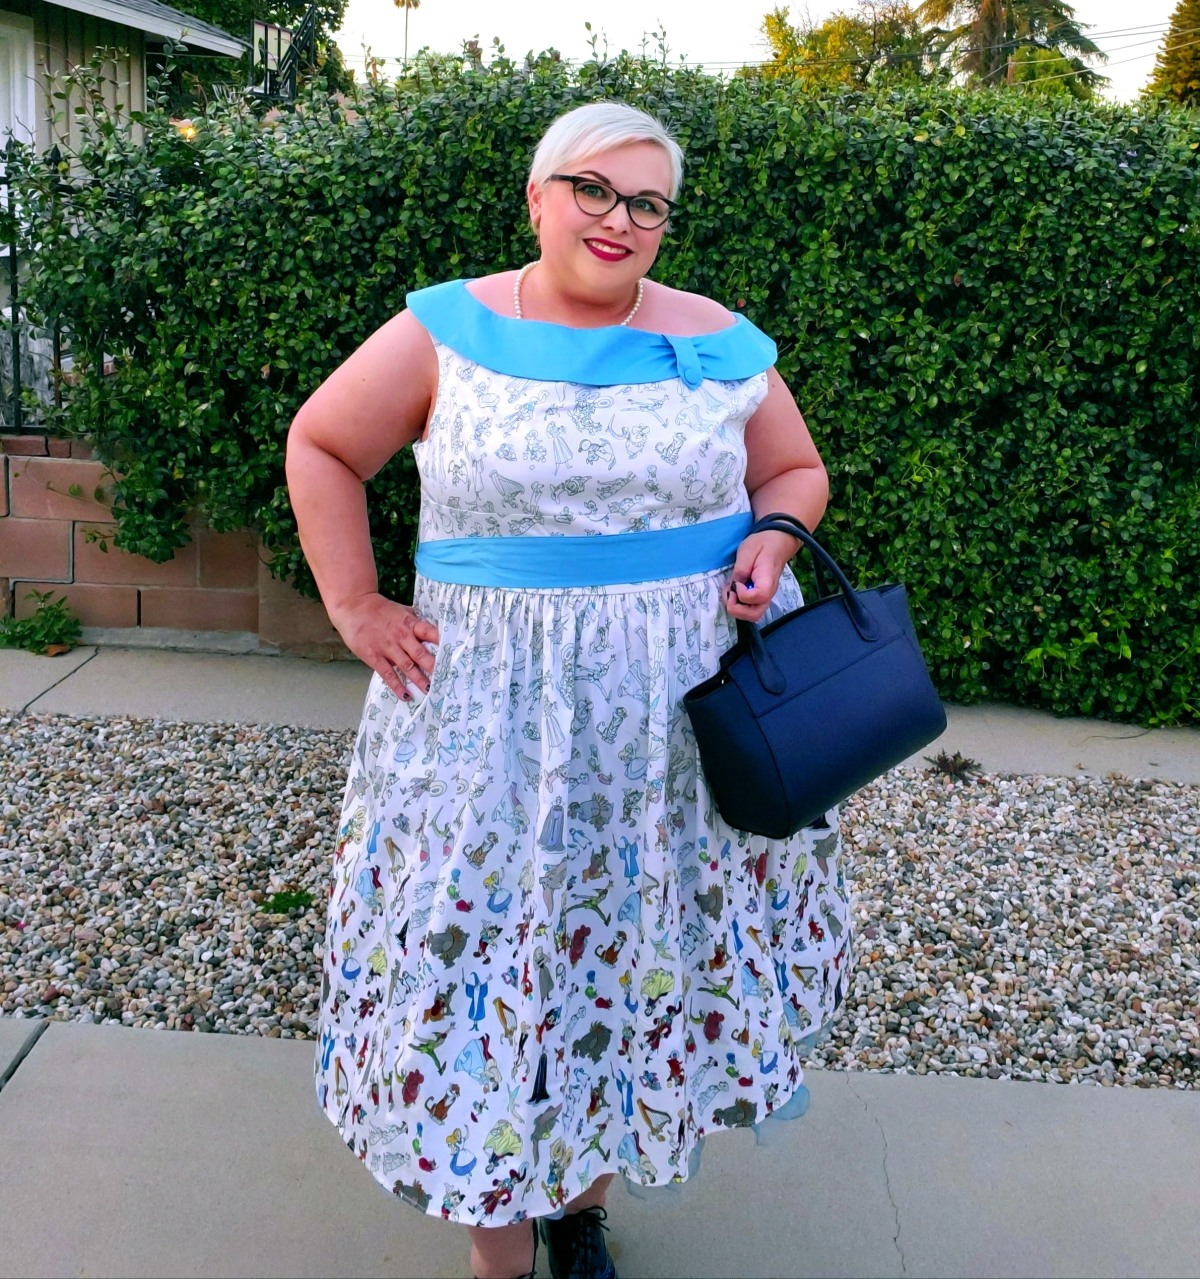 Outfit of the Day: Ink & Paint Dress from Disney DressShop